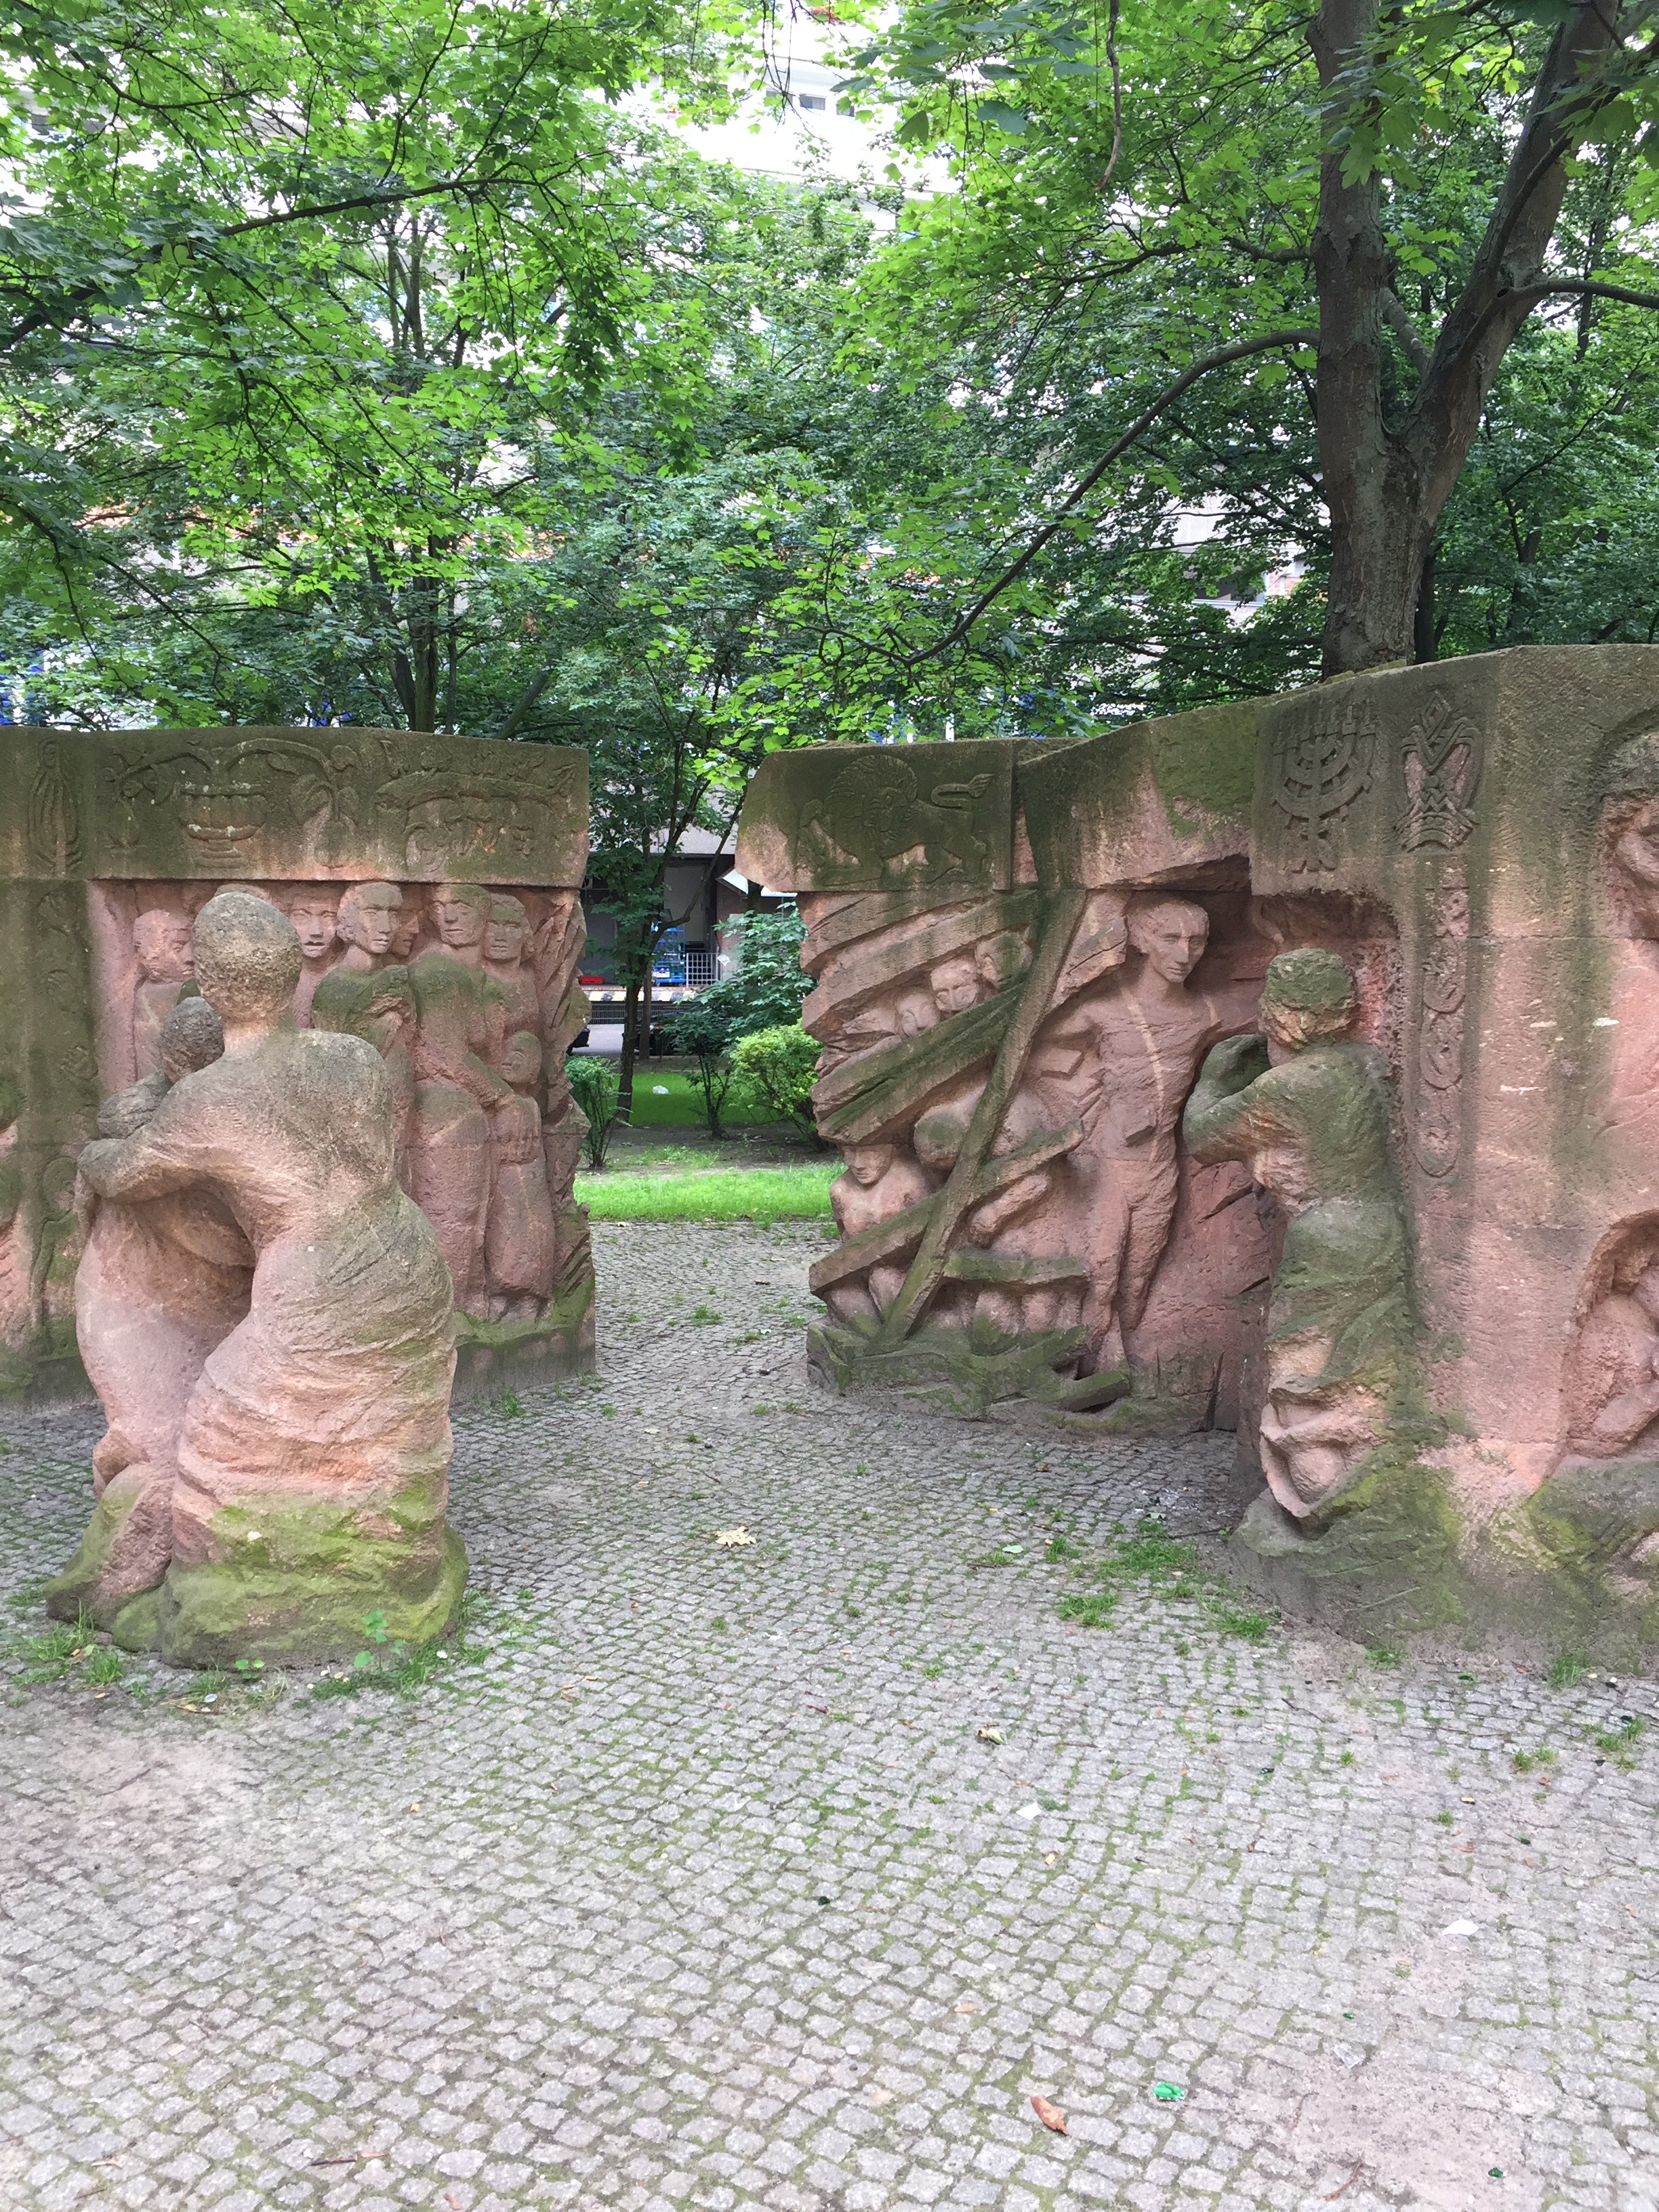 The Block of Women Memorial, Jewish Quarter, Berlin